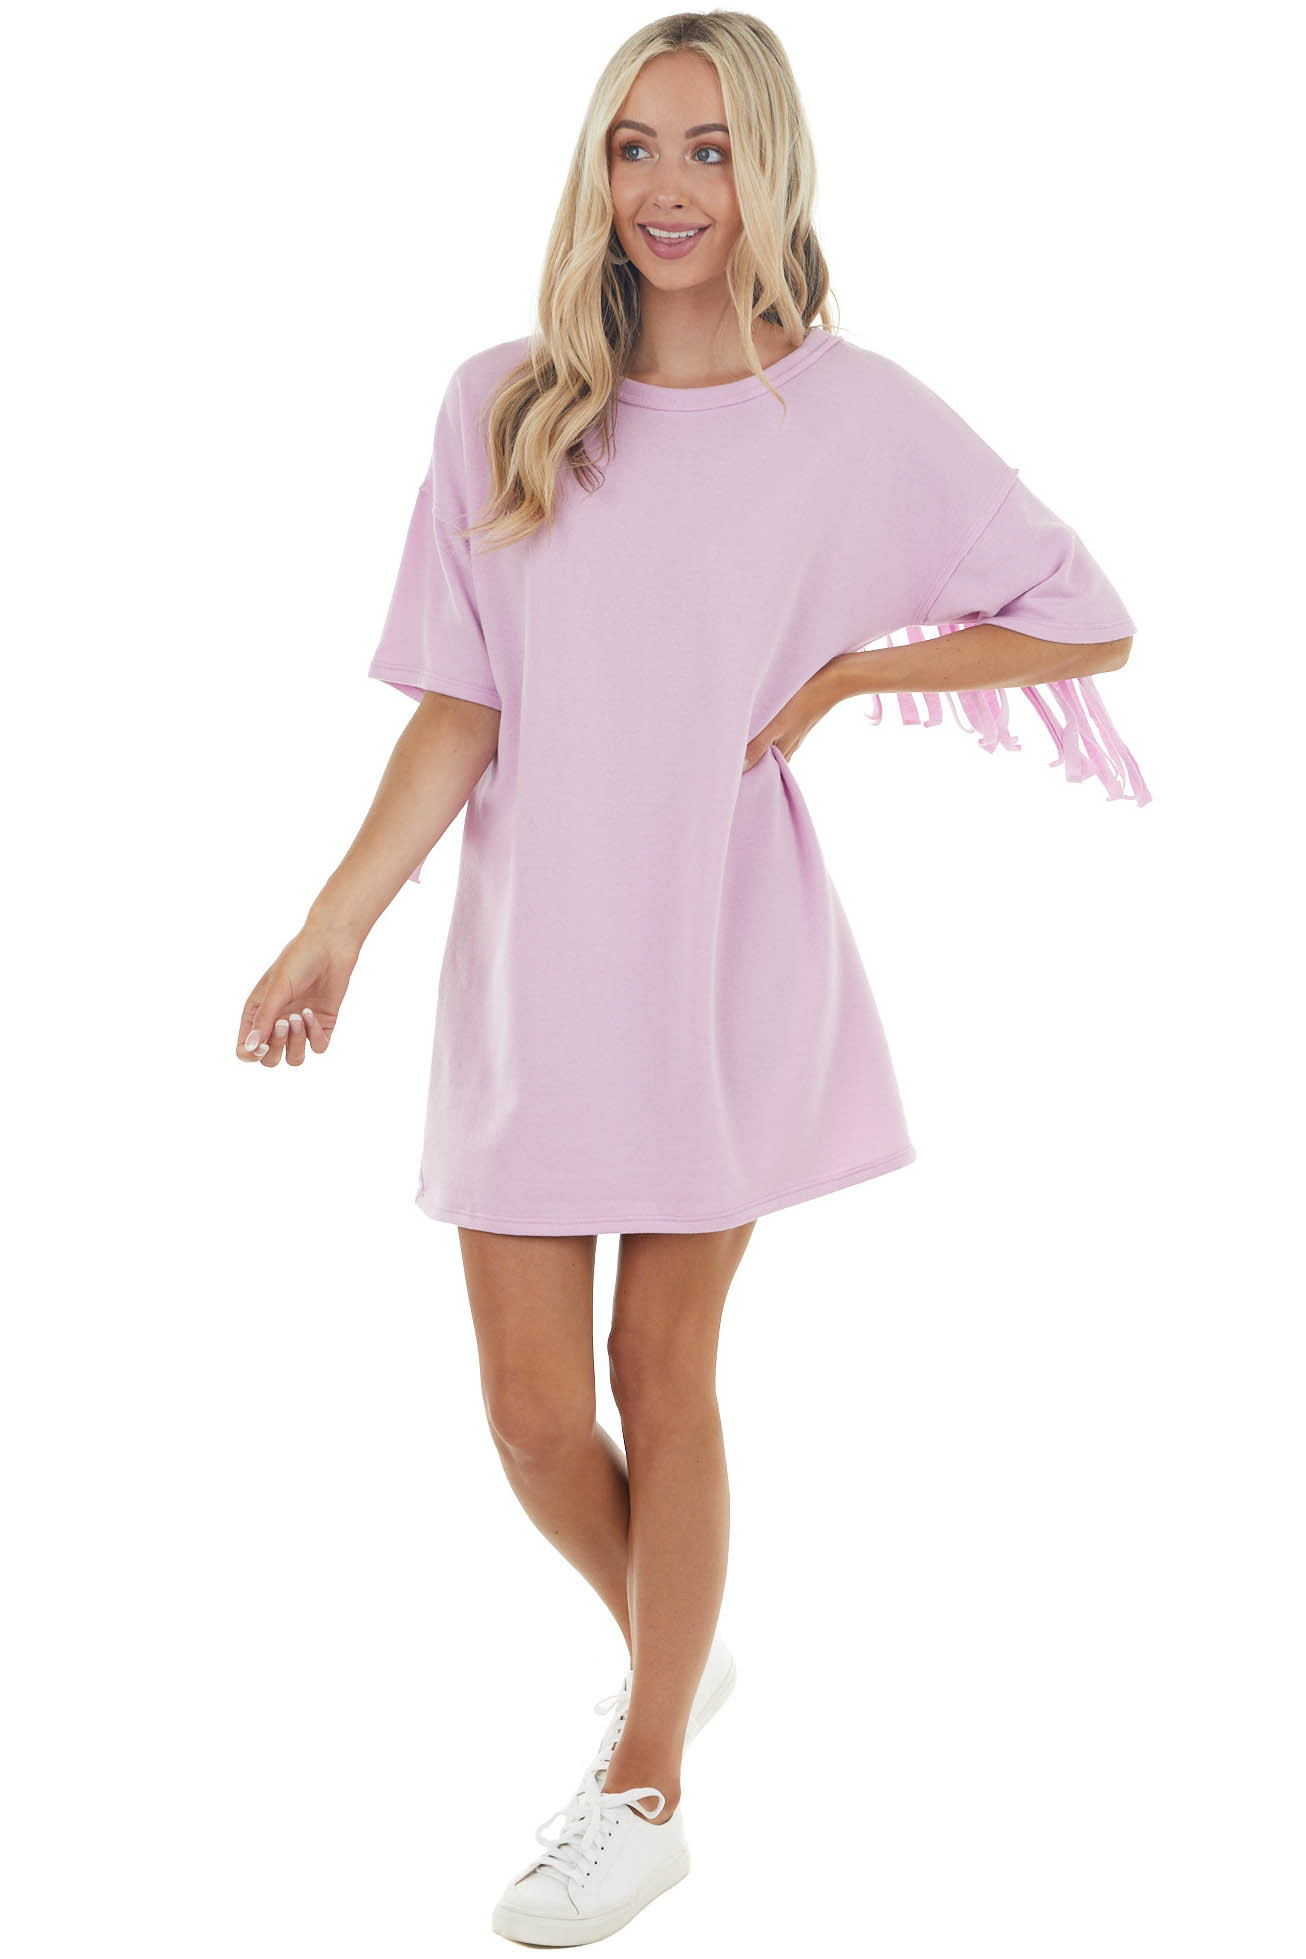 Pastel Orchid Short Sleeve Mini Dress with Fringe Details